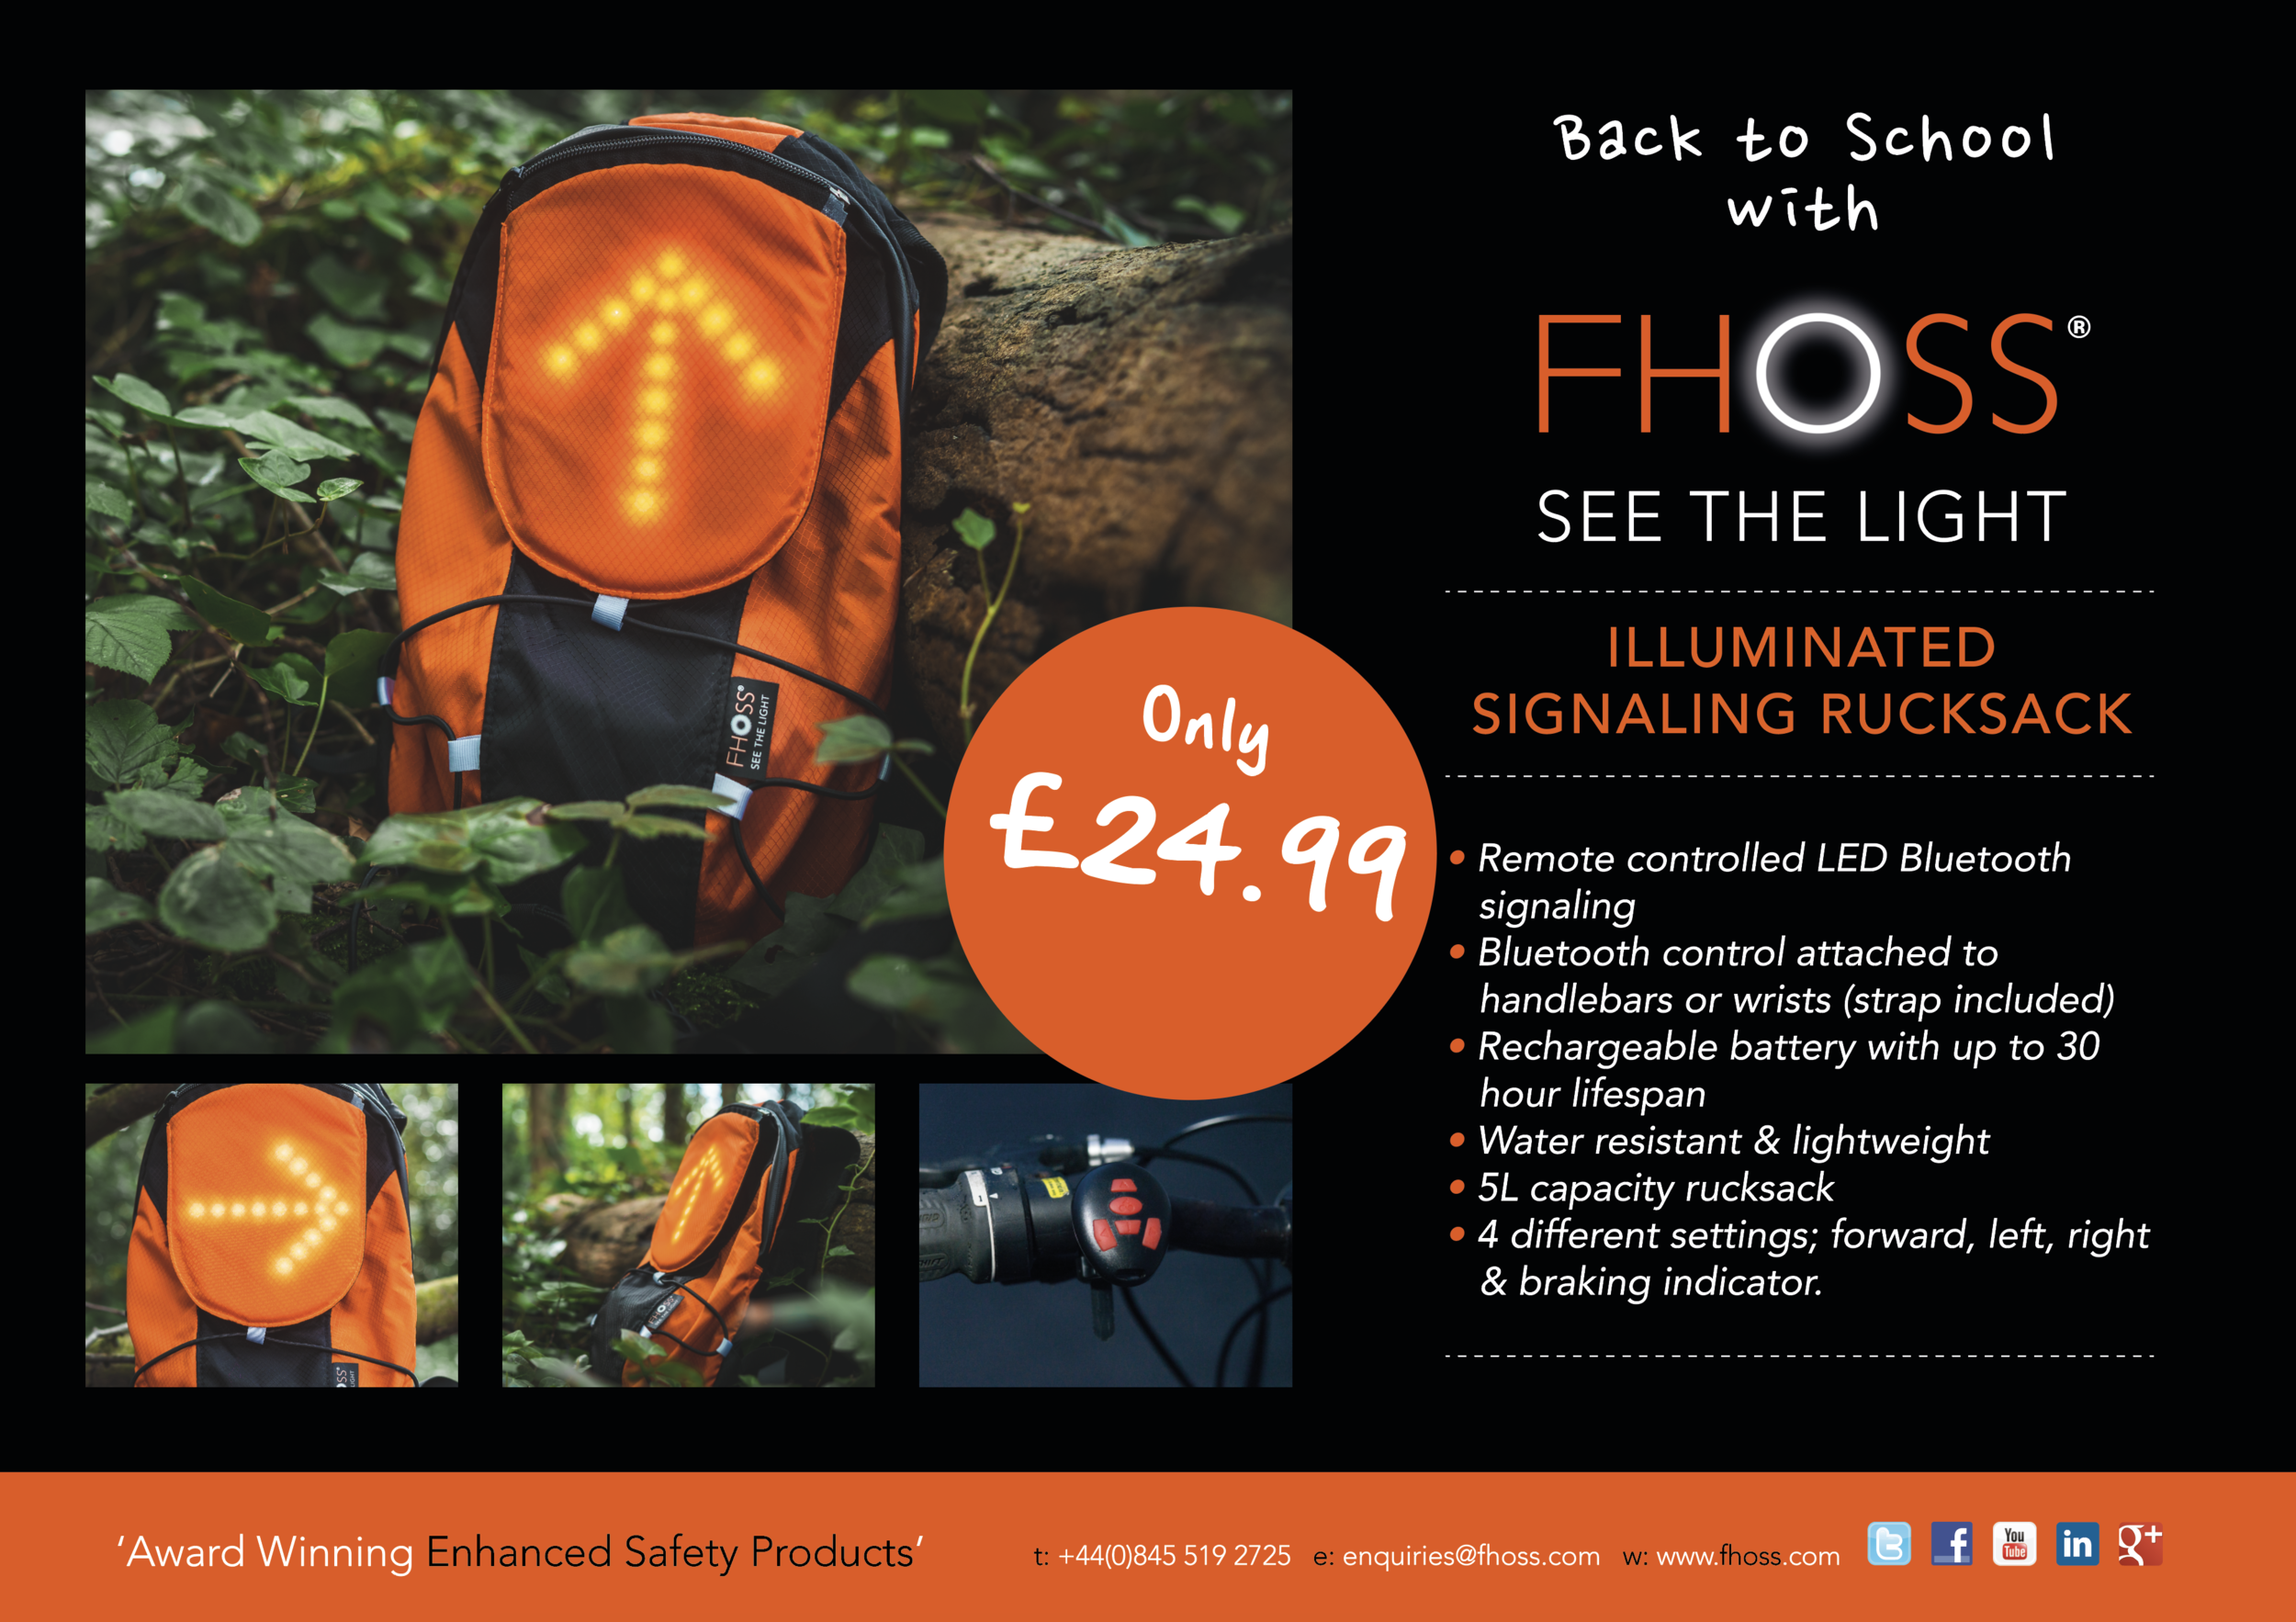 FHOSS Illuminated Signalling Rucksack